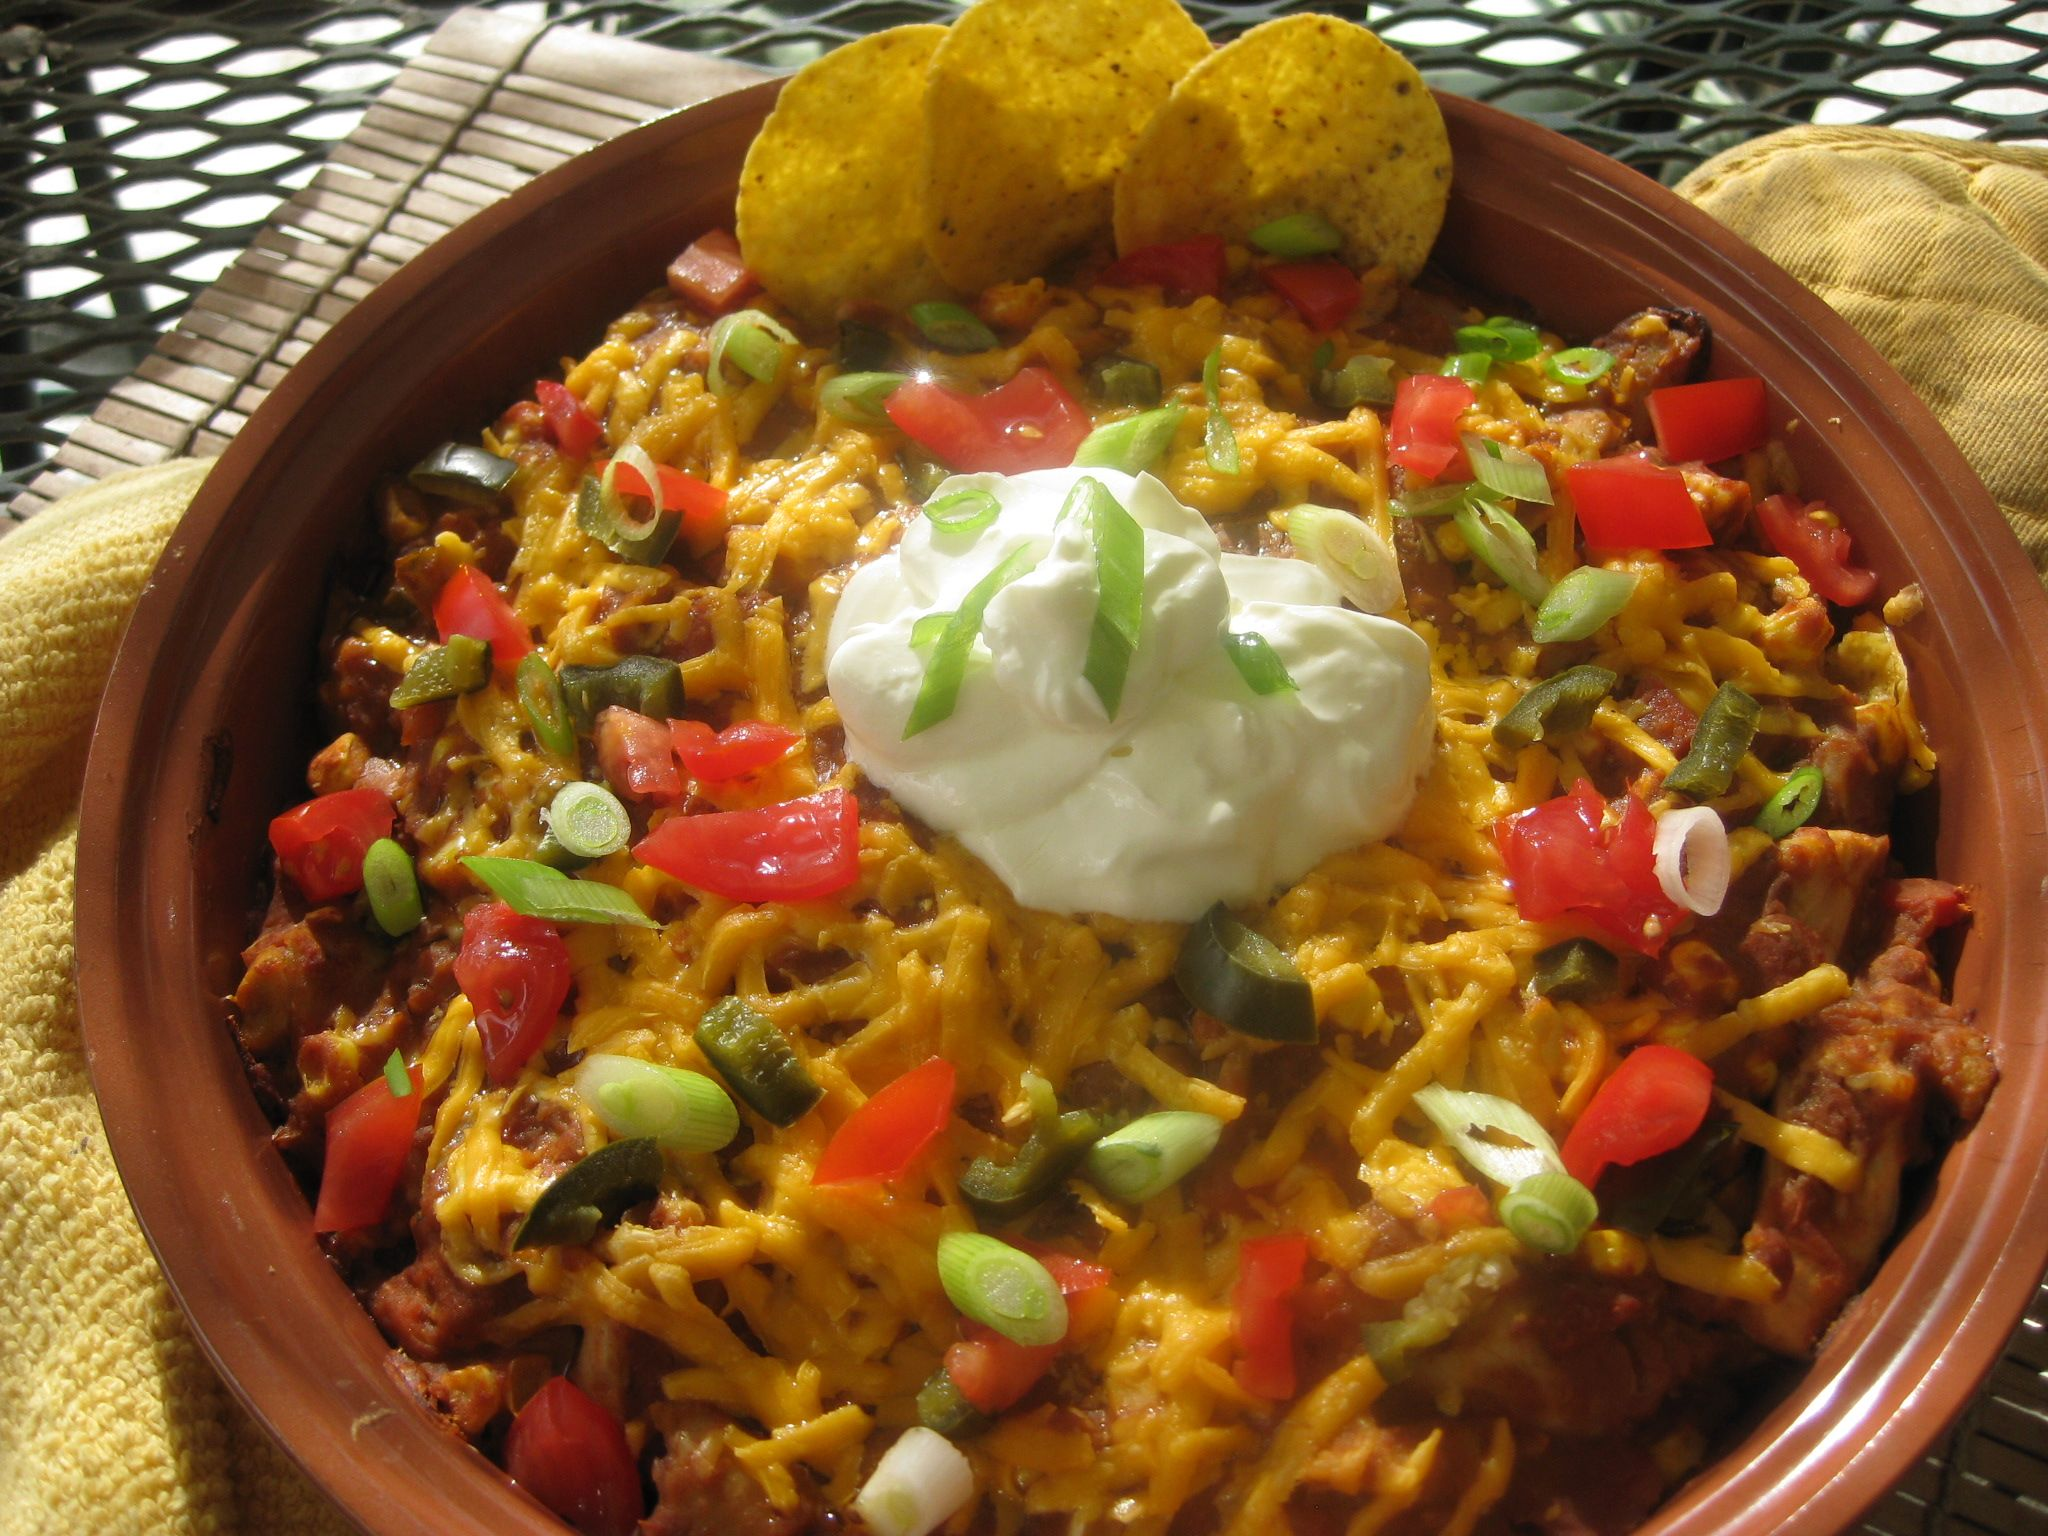 Easy Mexican Chicken with Tortilla Chips - I think I'll make this in individual dishes so everyone gets their own surrounded by chips on a plate. Might add some diced red and yellow pepper to the meat mixture... #mexicanchickentacos